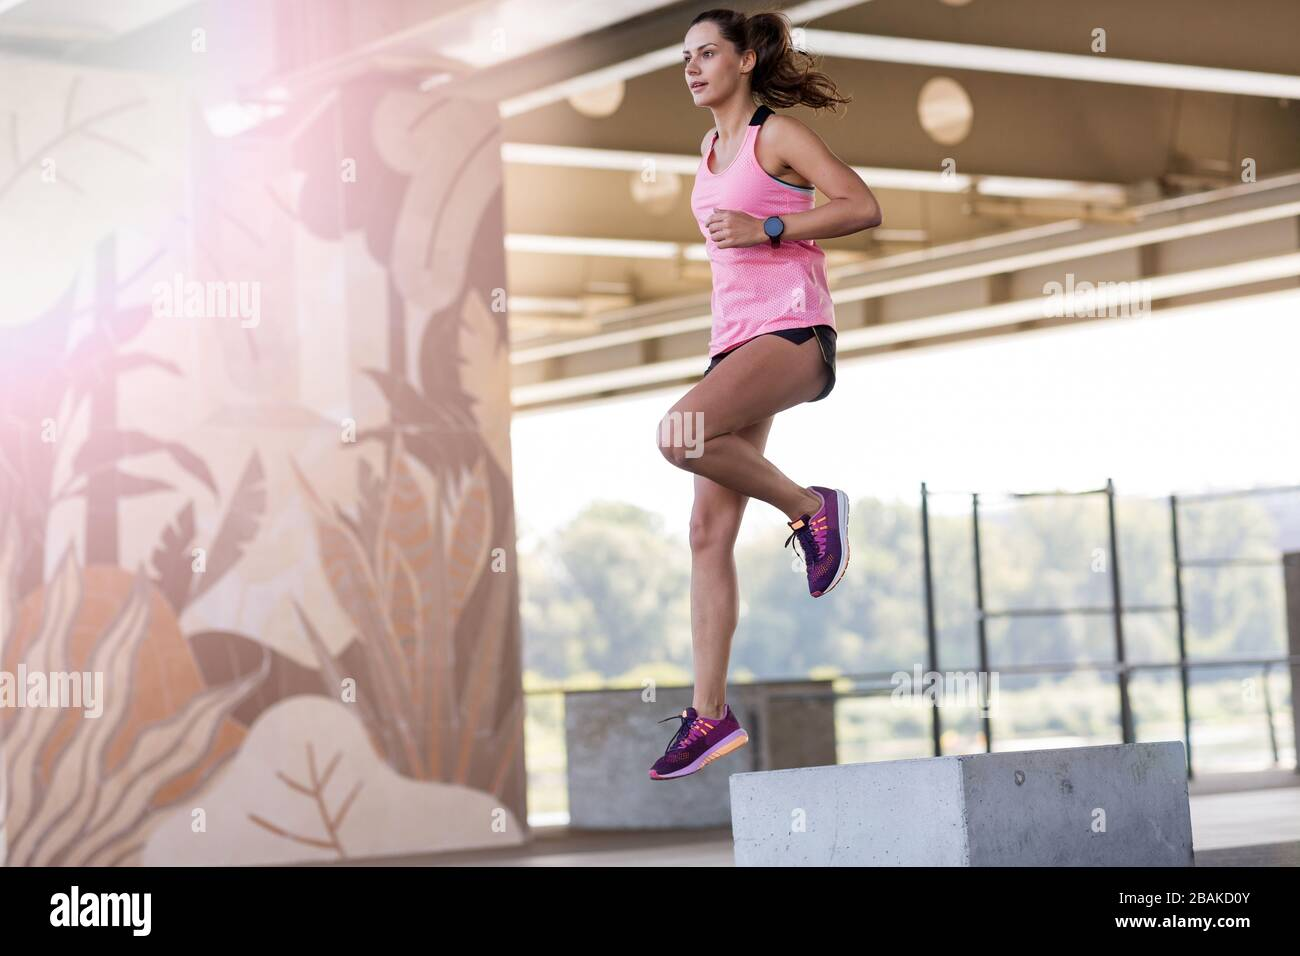 Young woman doing fitness exercise in urban area Stock Photo